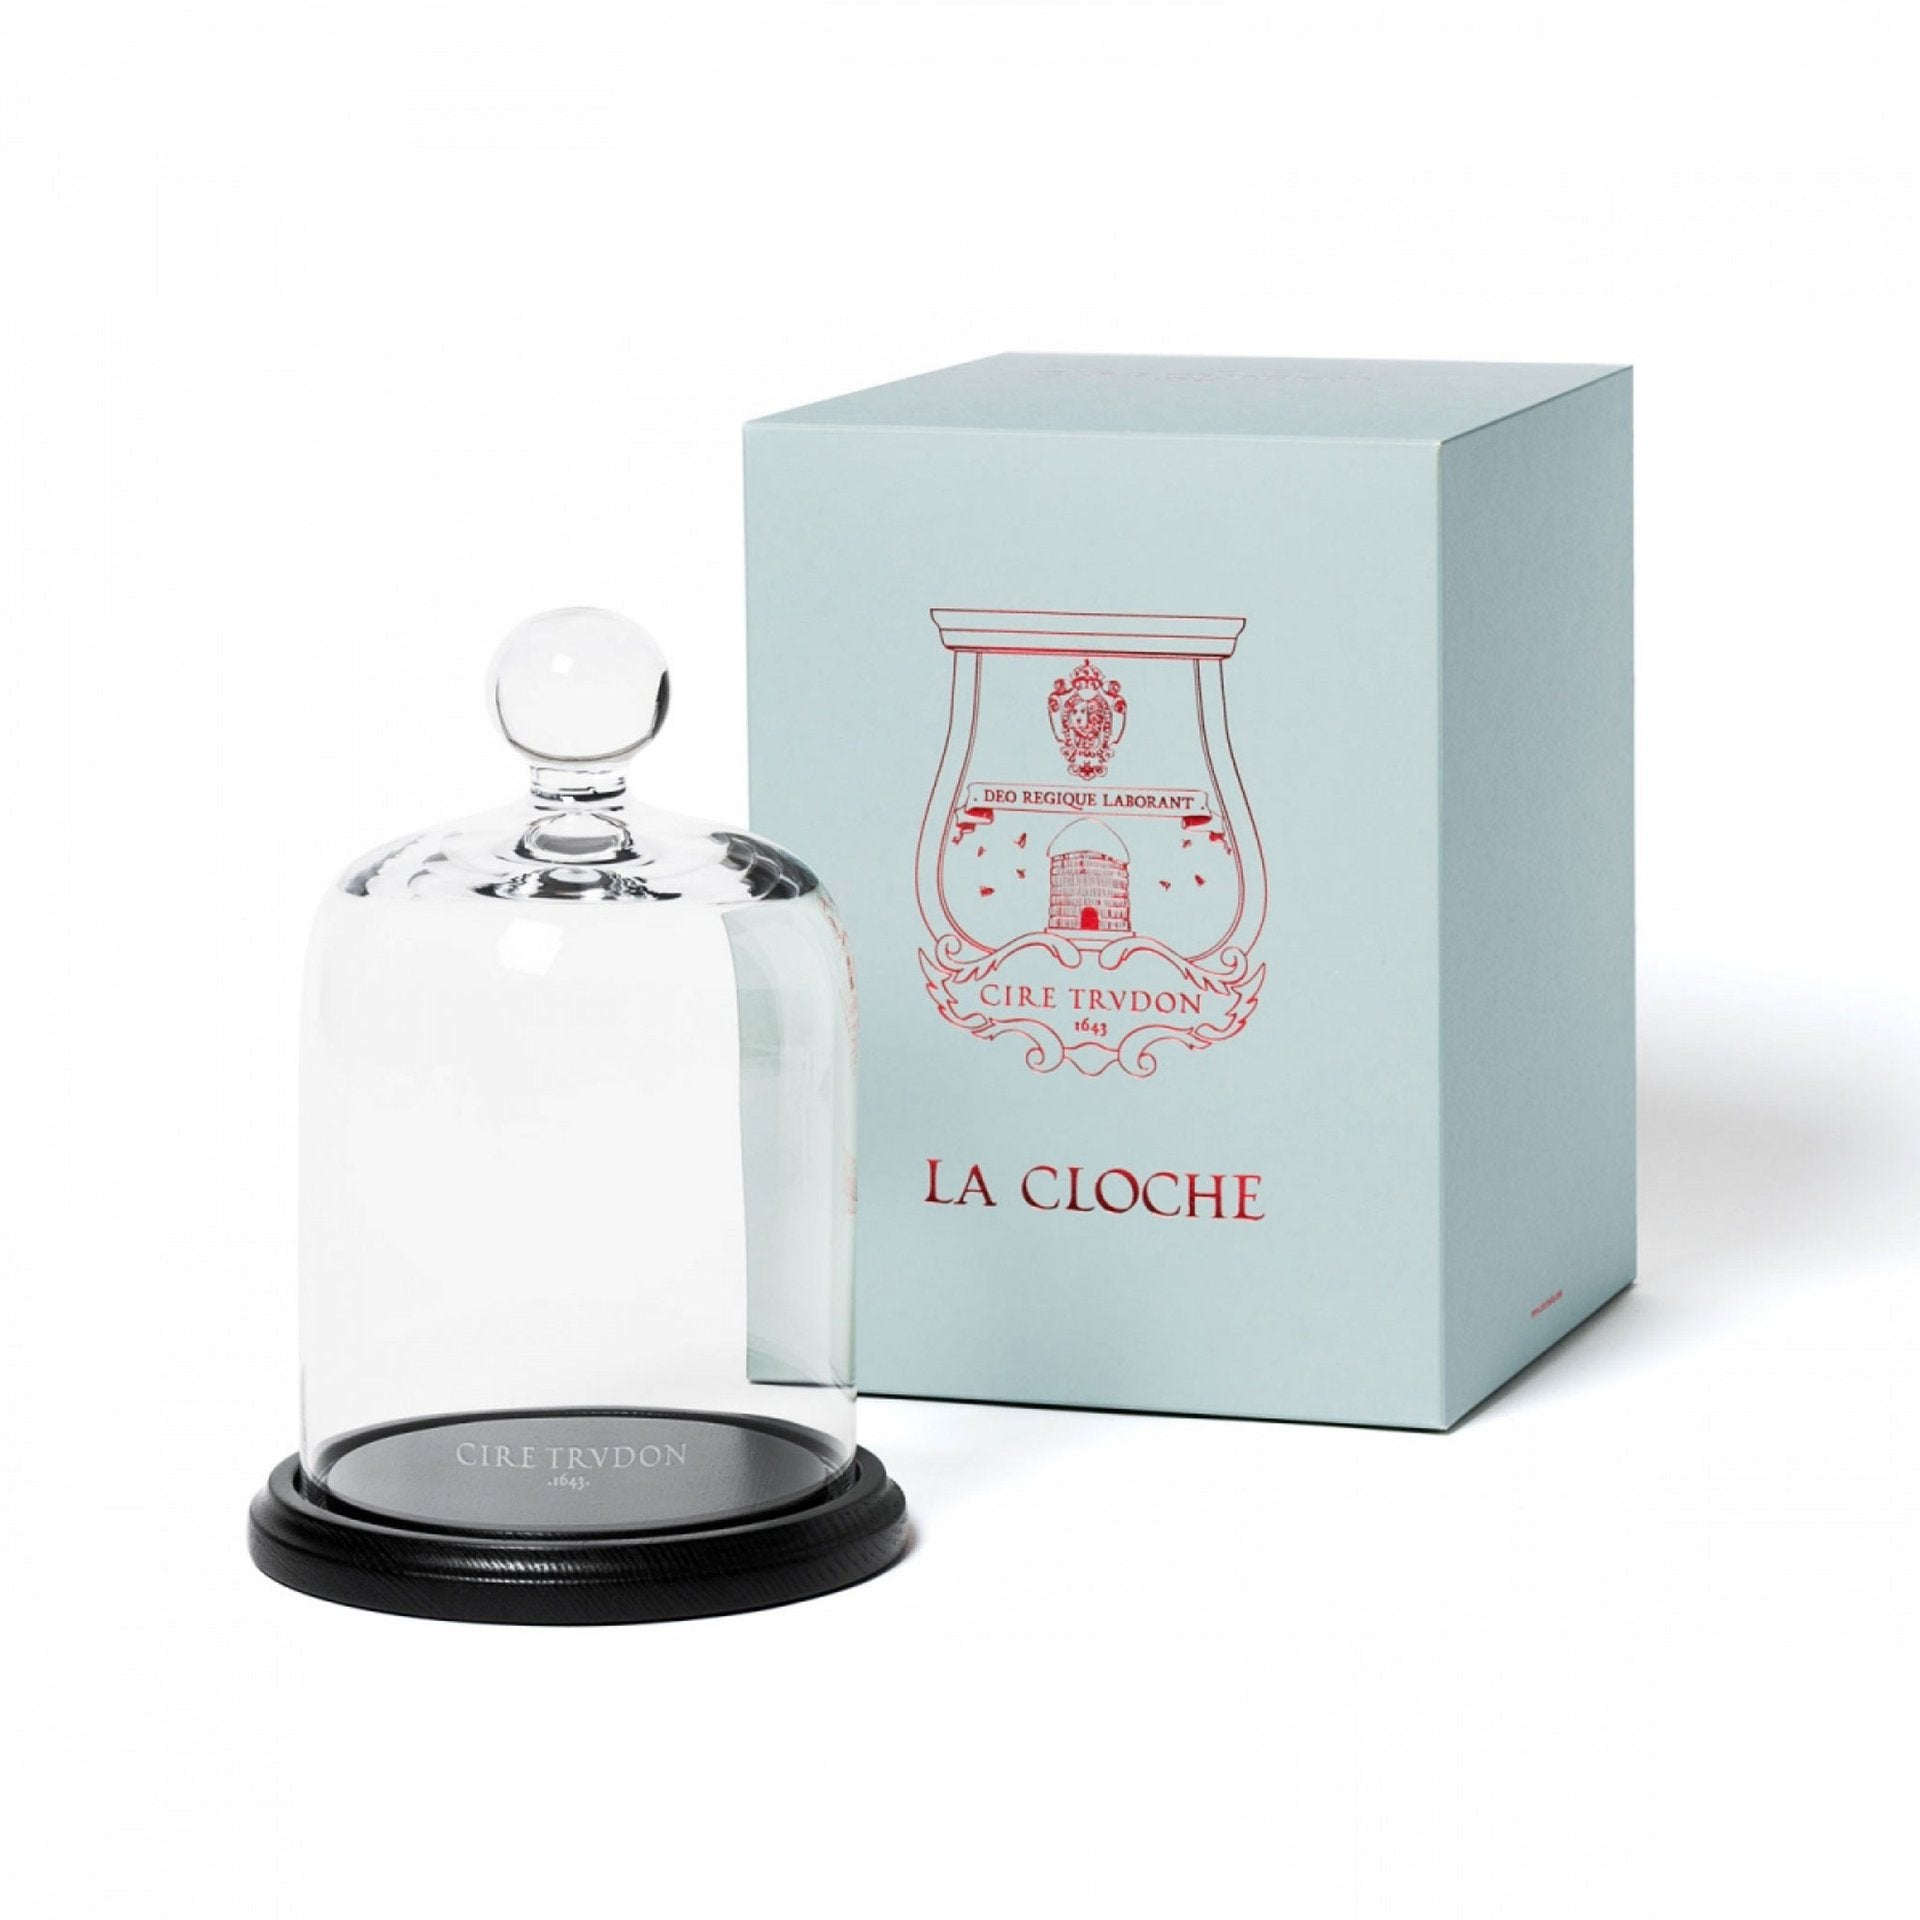 LA CLOCHE GLASS BELL JAR WITH BOARD - CIRE TRUDON